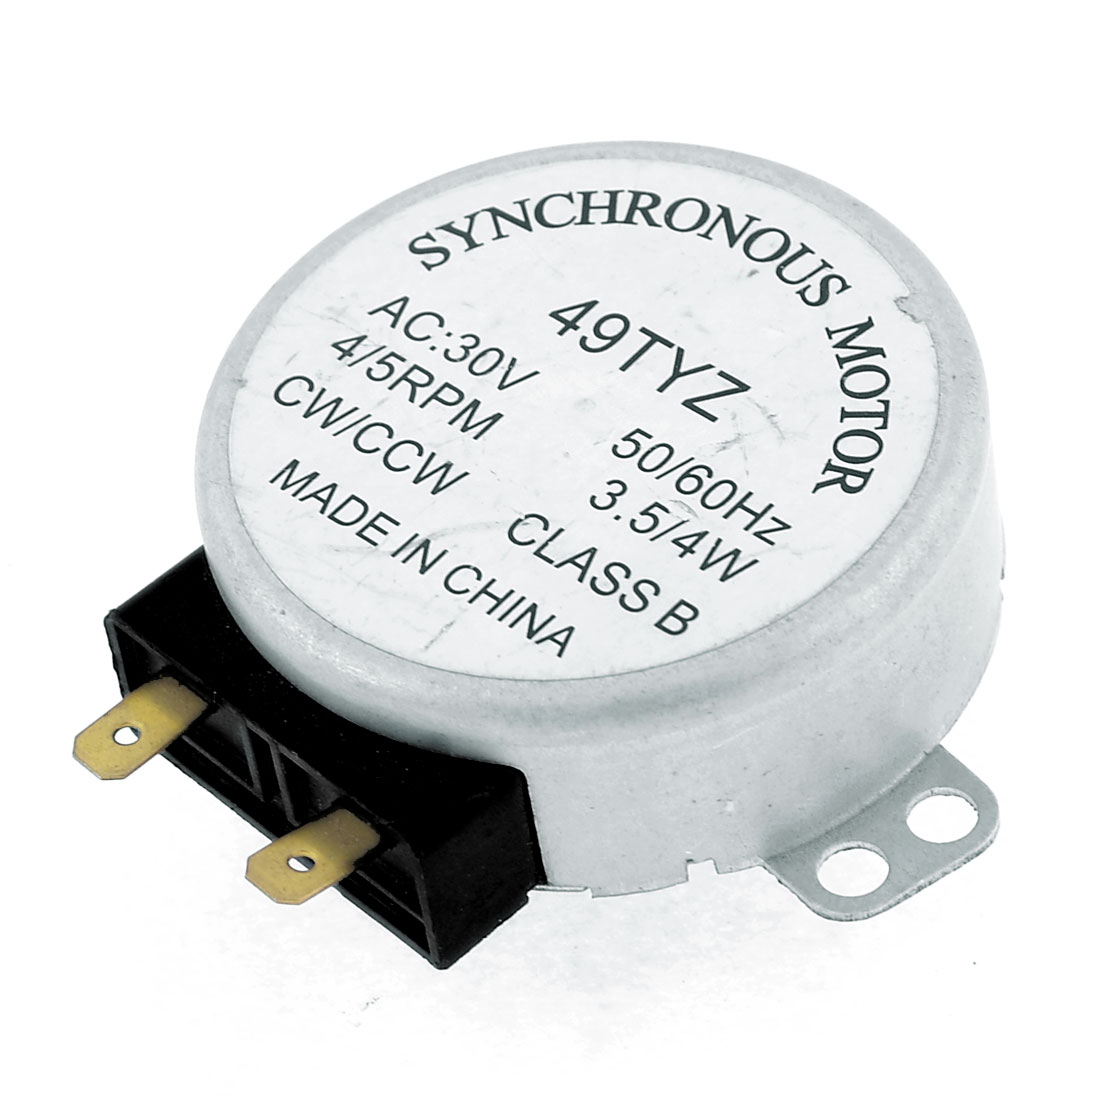 AC 30V 3.5/4W 4/5RPM Micro Synchronous Motor for Microwave Oven